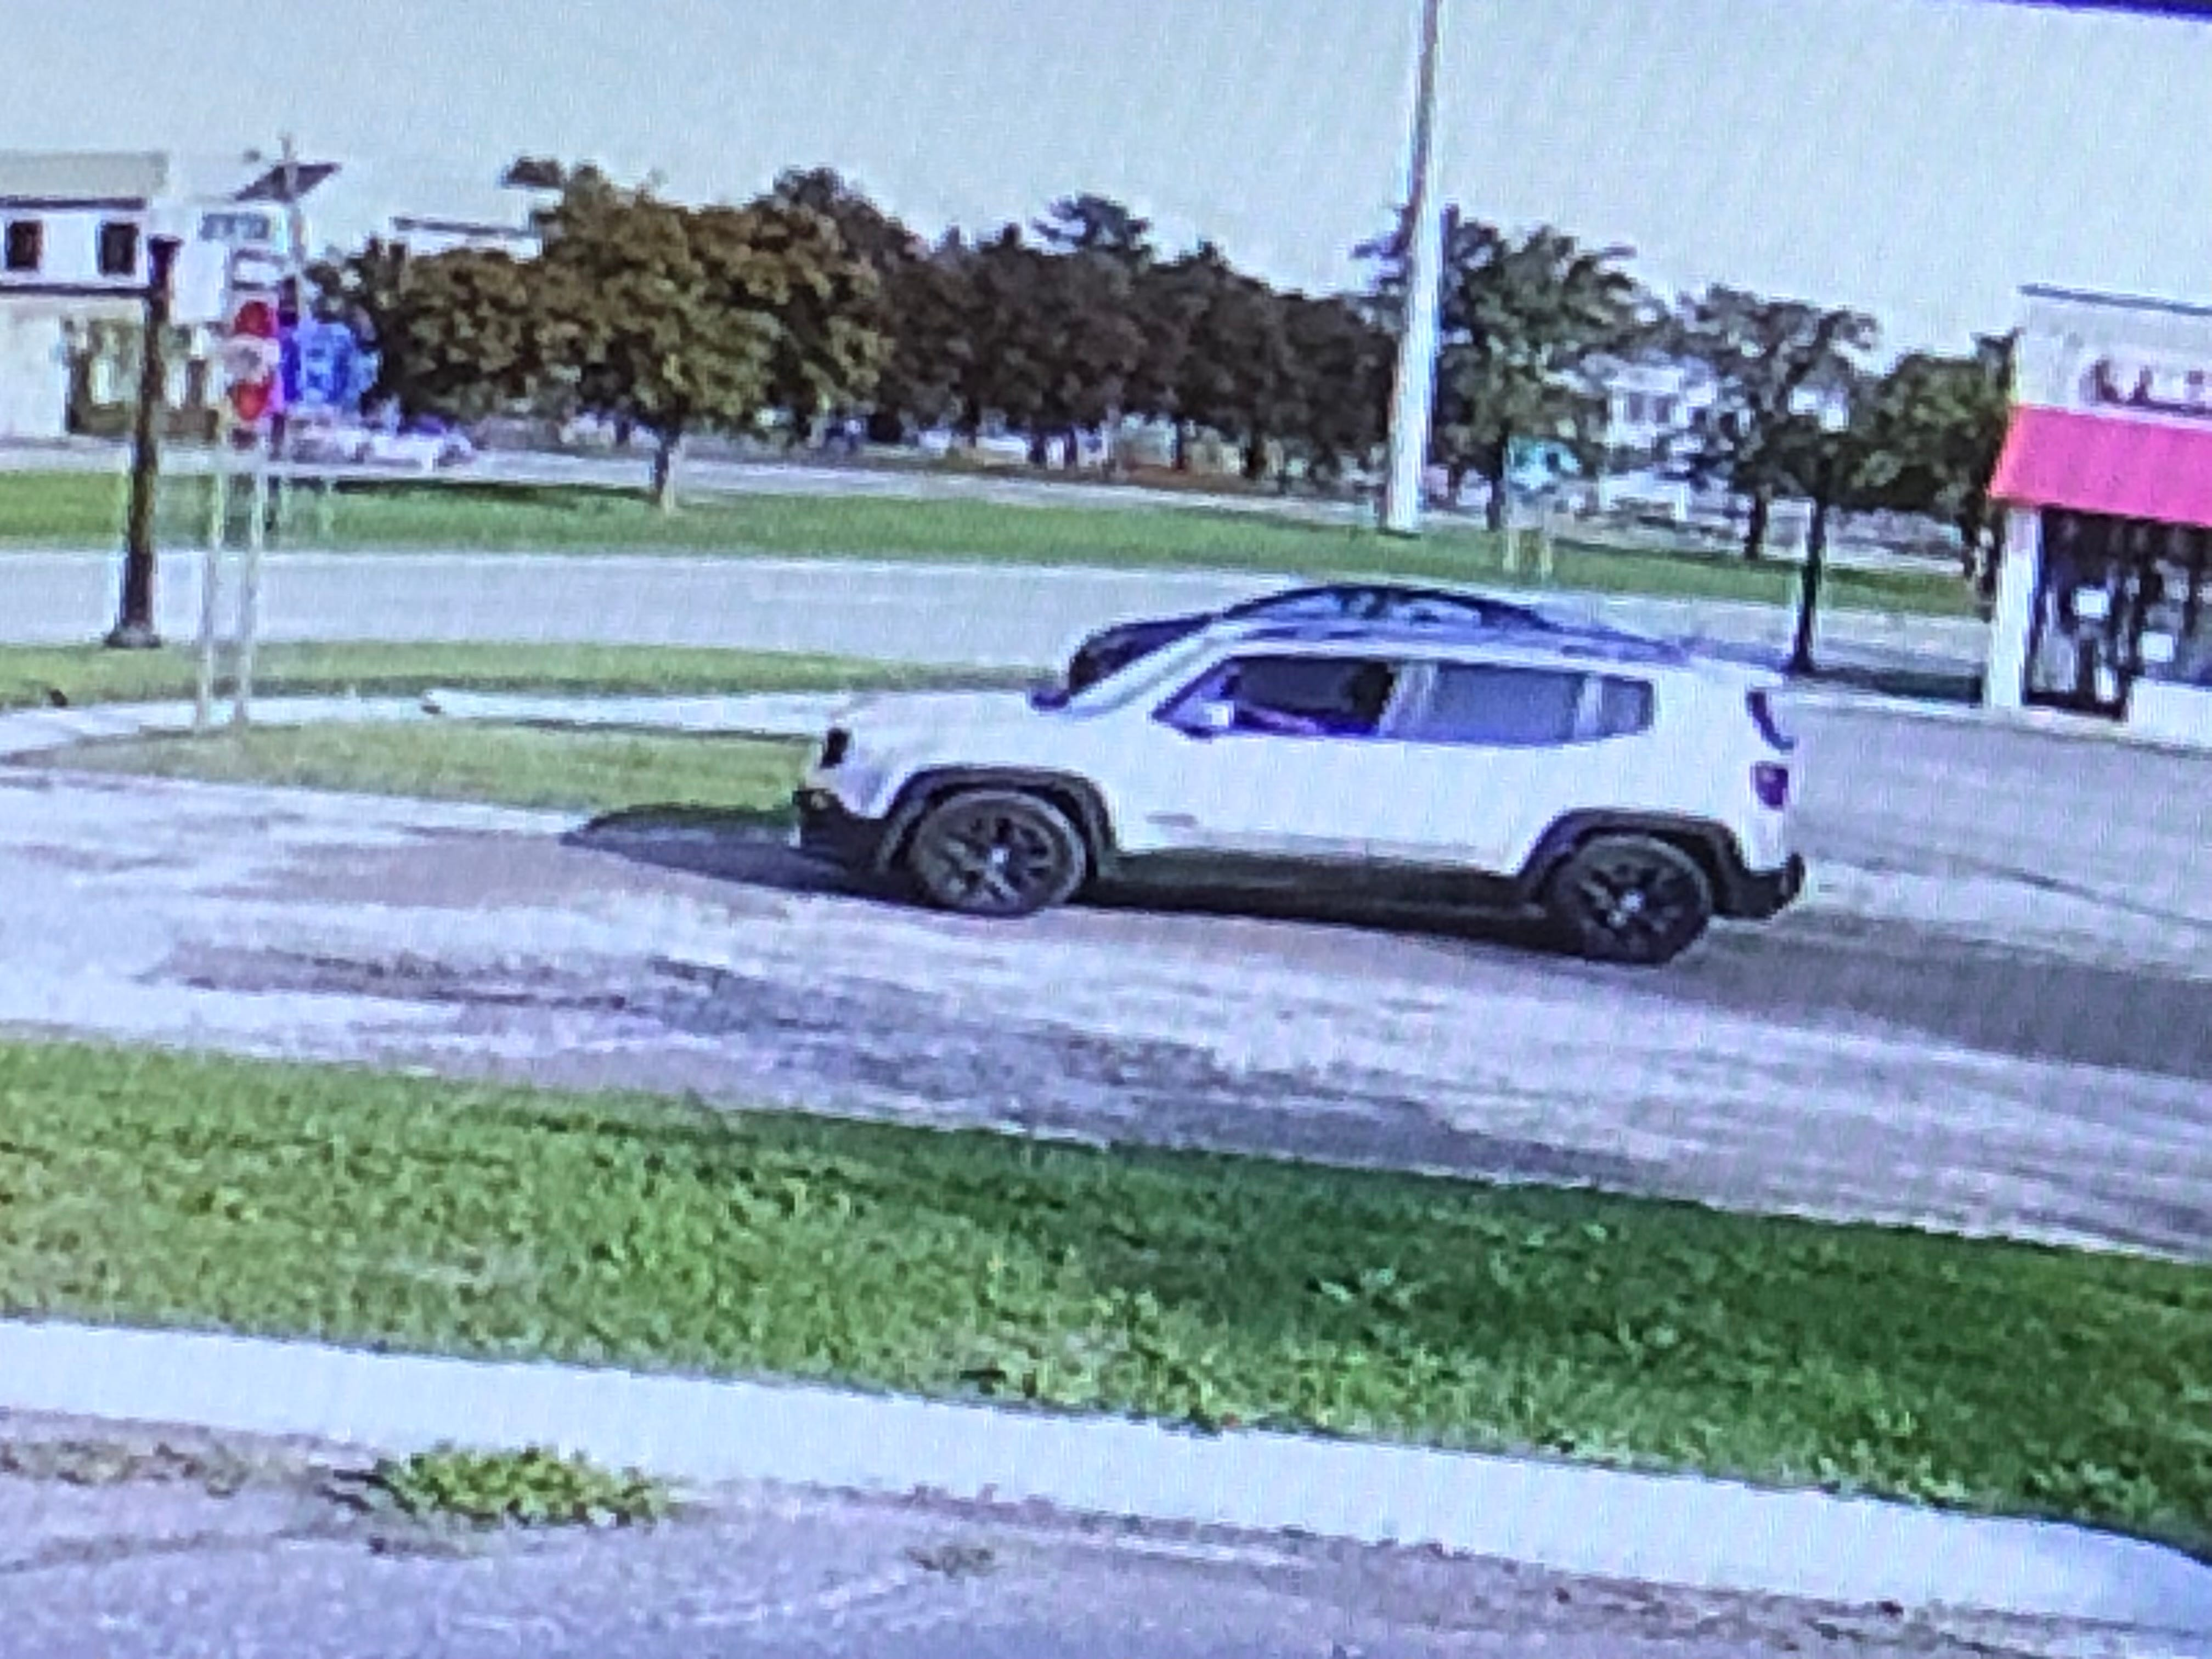 Lost Farmington Hills girl sexually assaulted in Detroit, police say